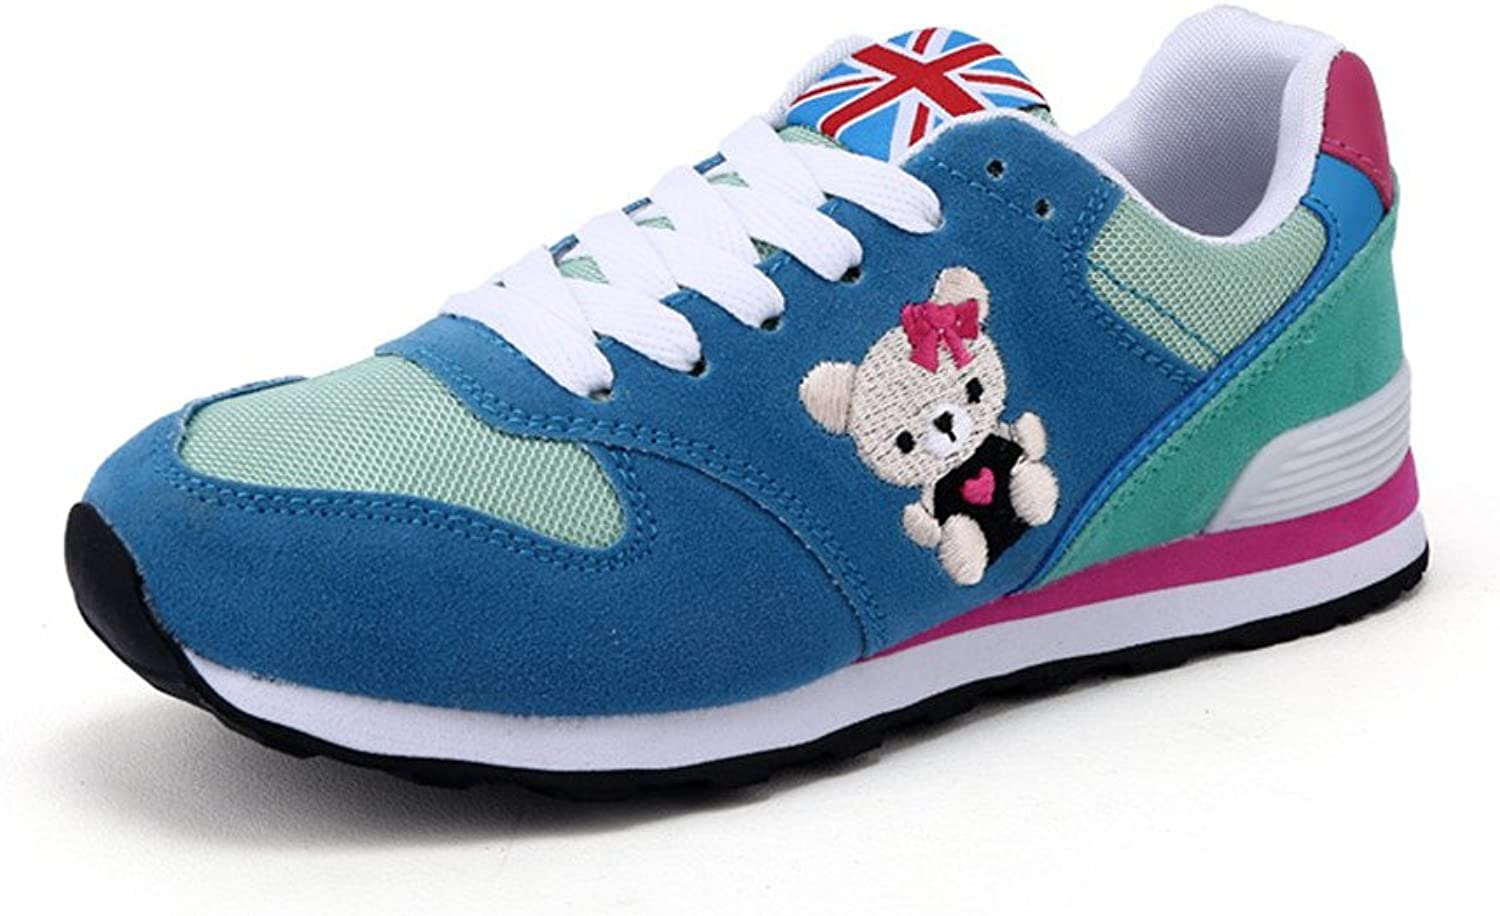 XDX Taste Of Life Cute Air Cushion Running shoes Women's Light Sports Mesh Casual Sneakers